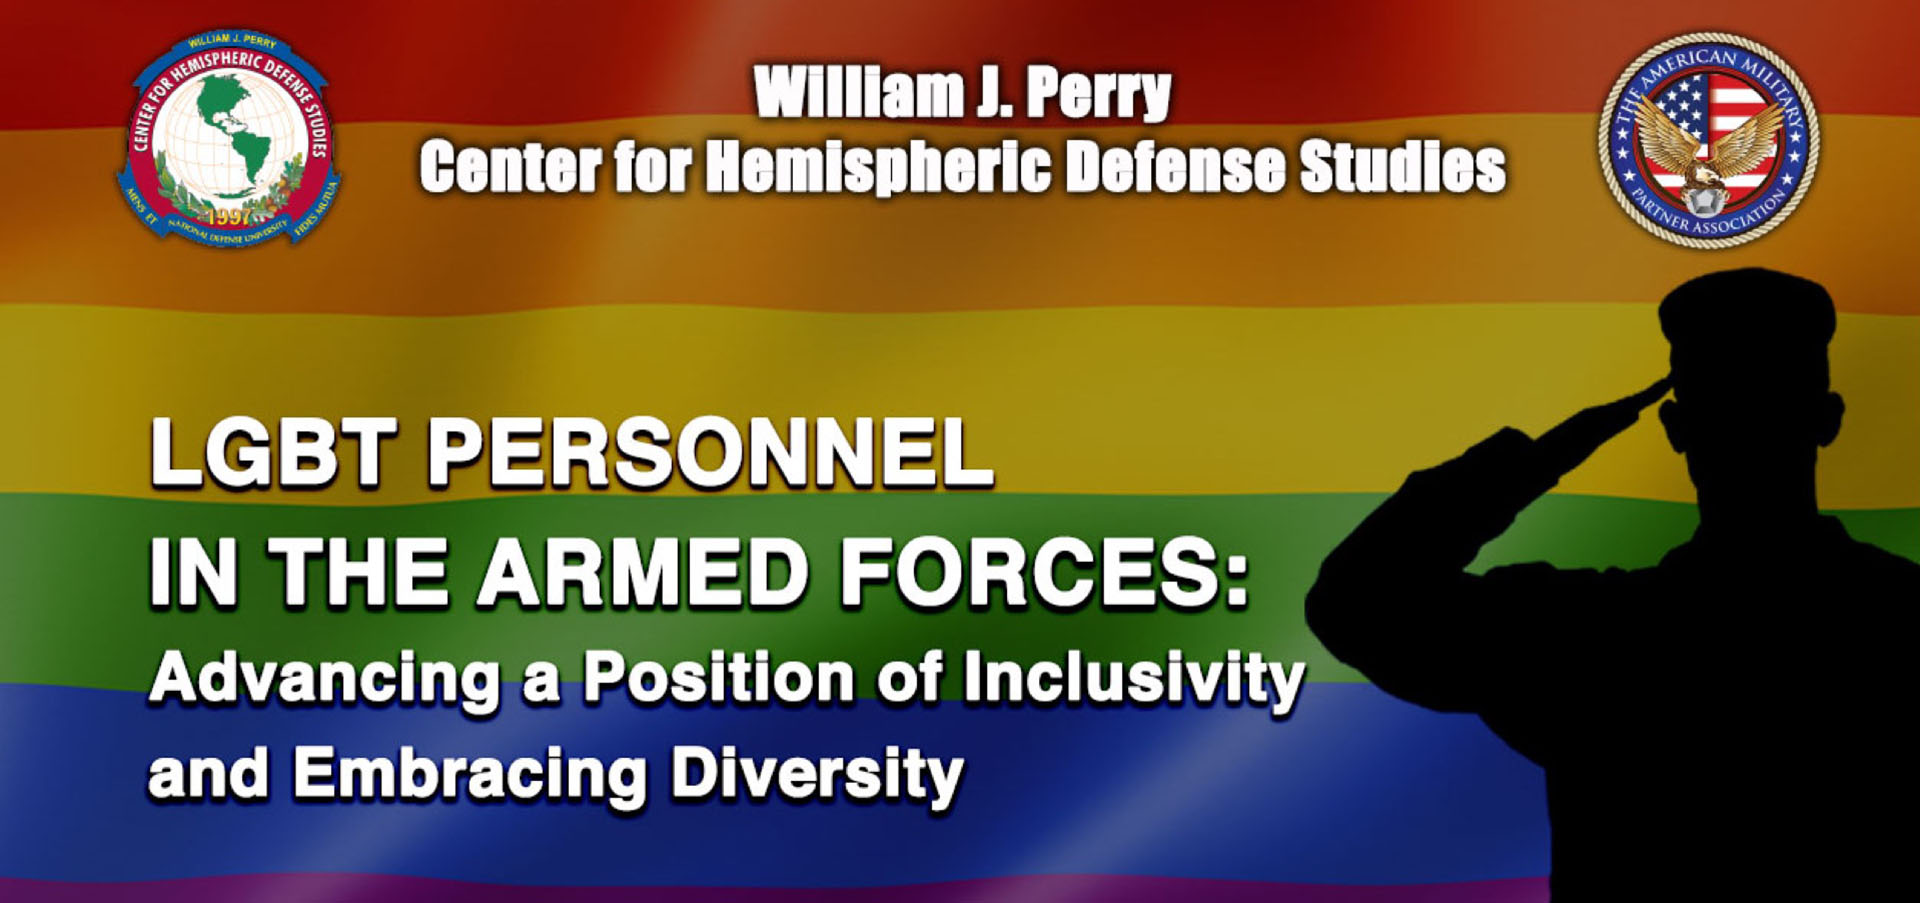 LGBT Personnel in the Armed Forces: Advancing a Position of Inclusivity and Embracing Diversity